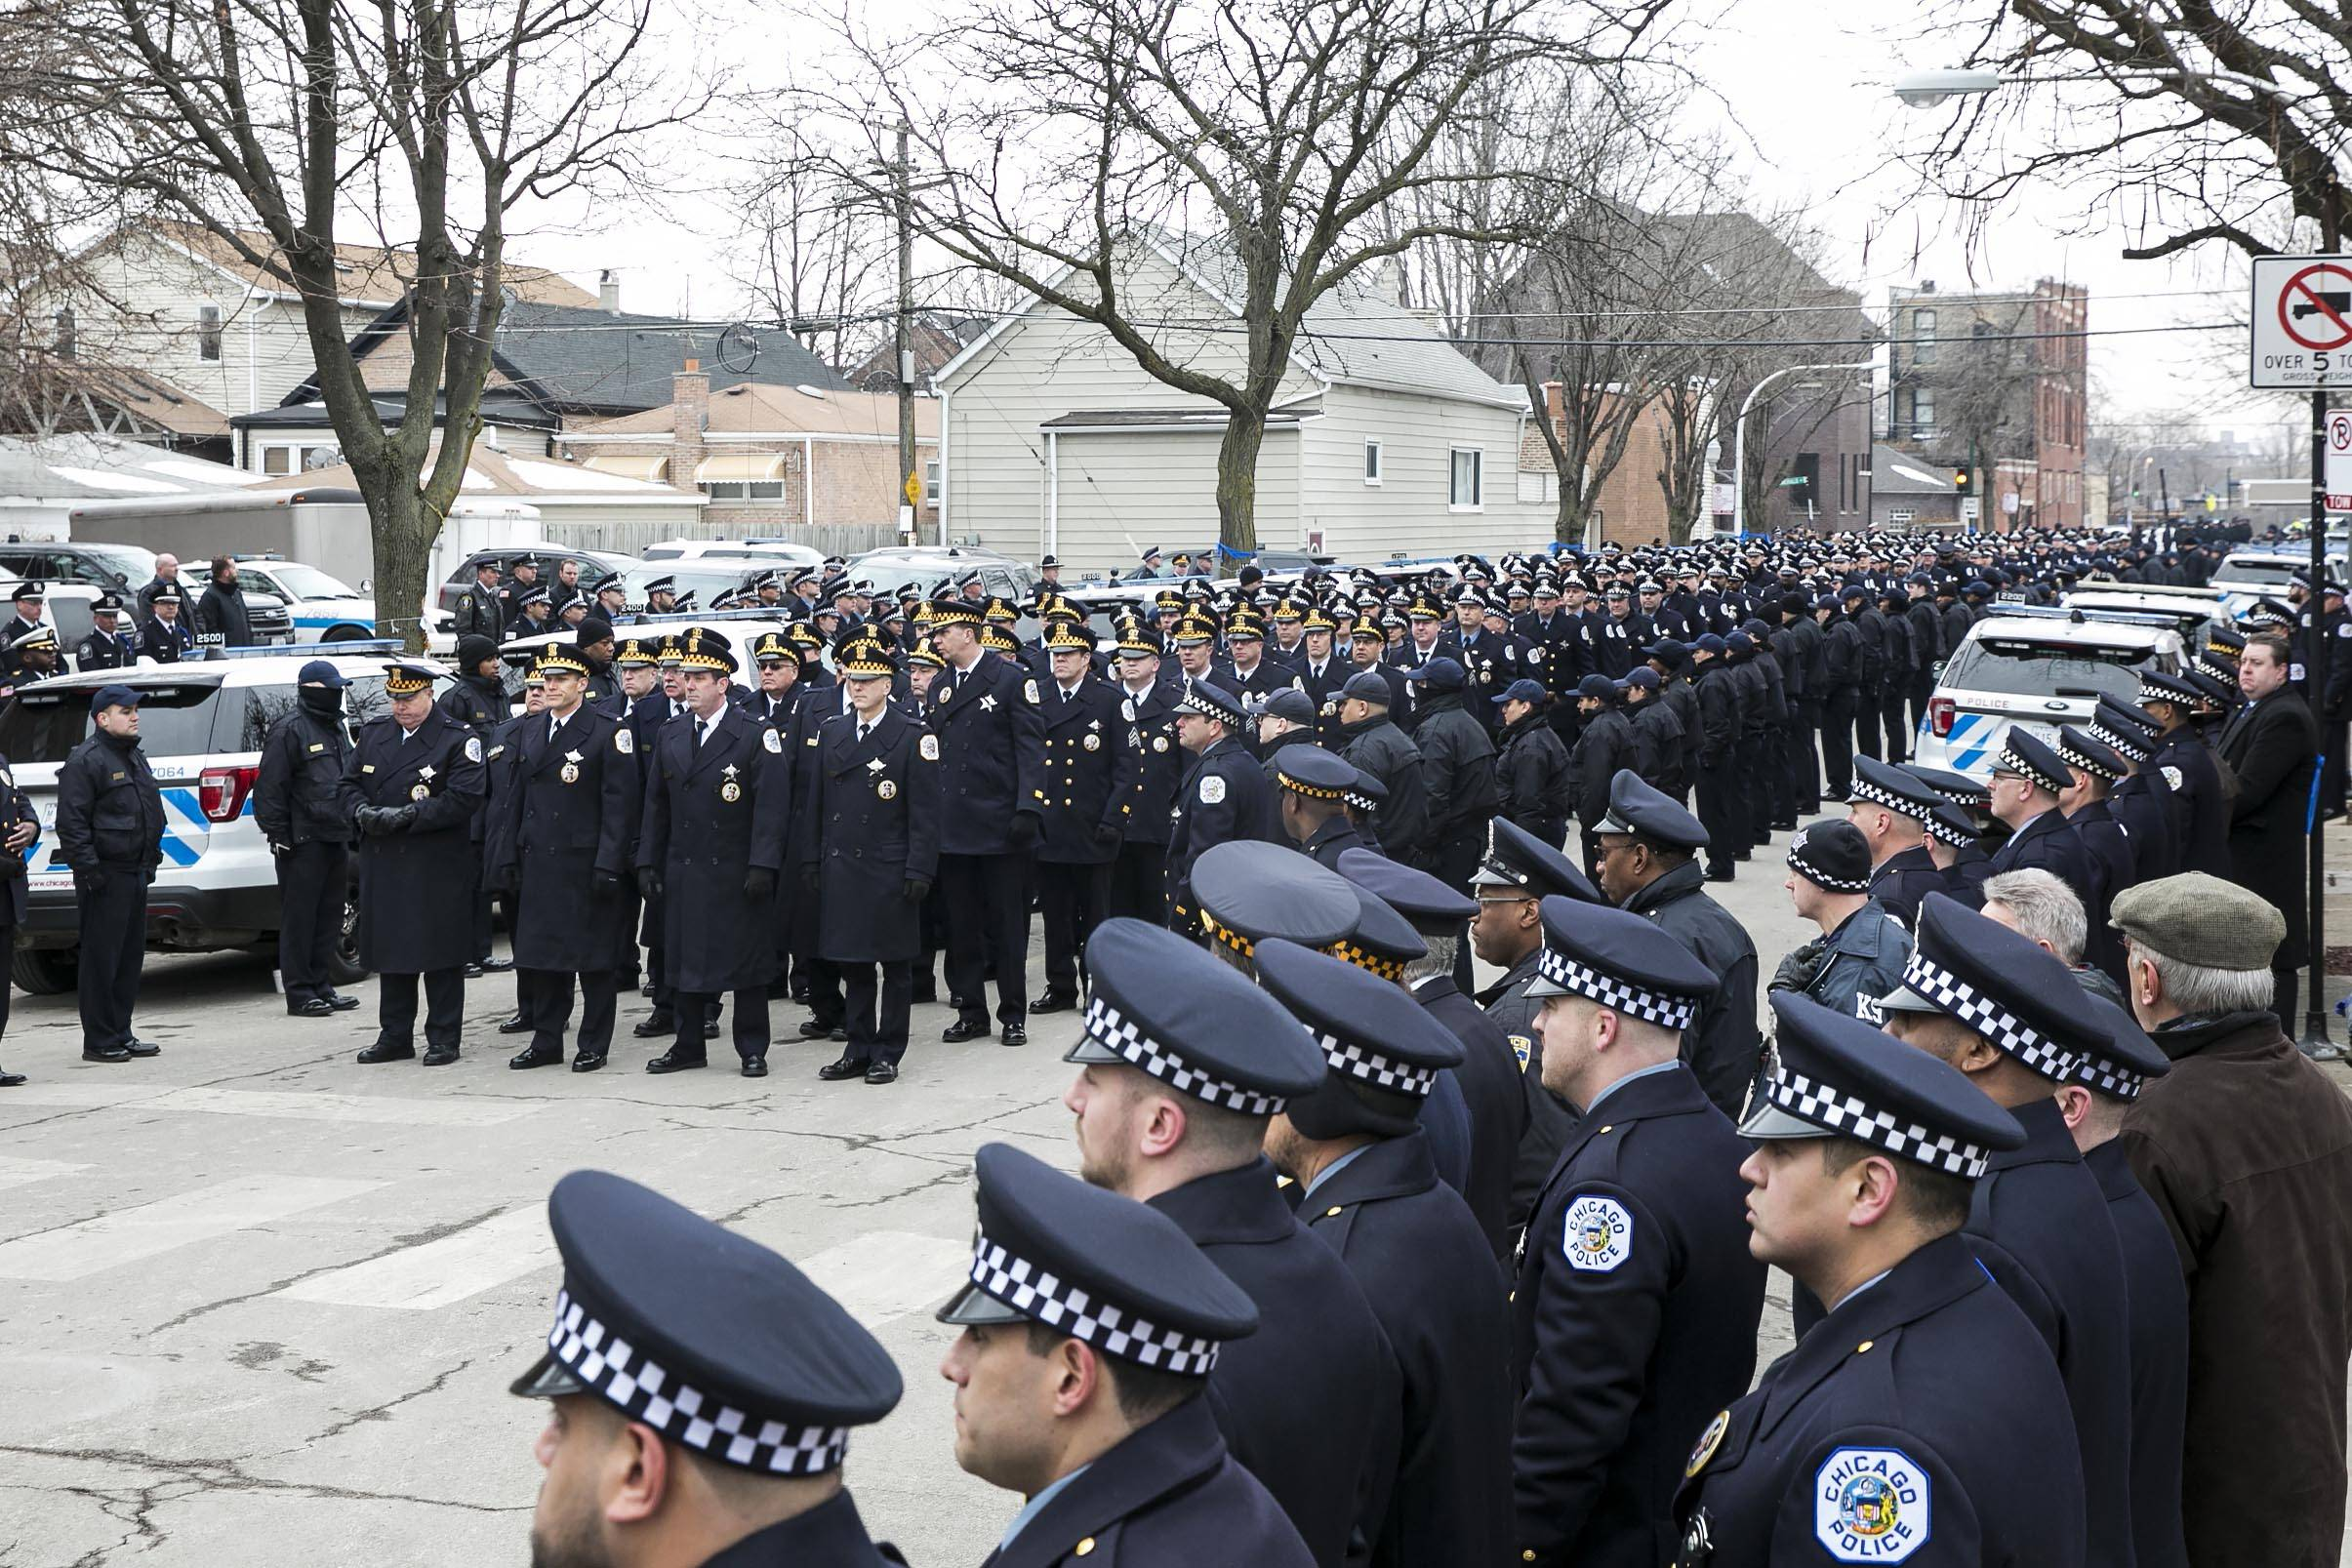 Hundreds of officers attend the funeral for Chicago Police Cmdr. Paul Bauer at Nativity of Our Lord Catholic Church, Saturday, Feb. 17, 2018. Bauer was shot to death Tuesday outside the Thompson Center, where he had confronted a man who was fleeing other officers.